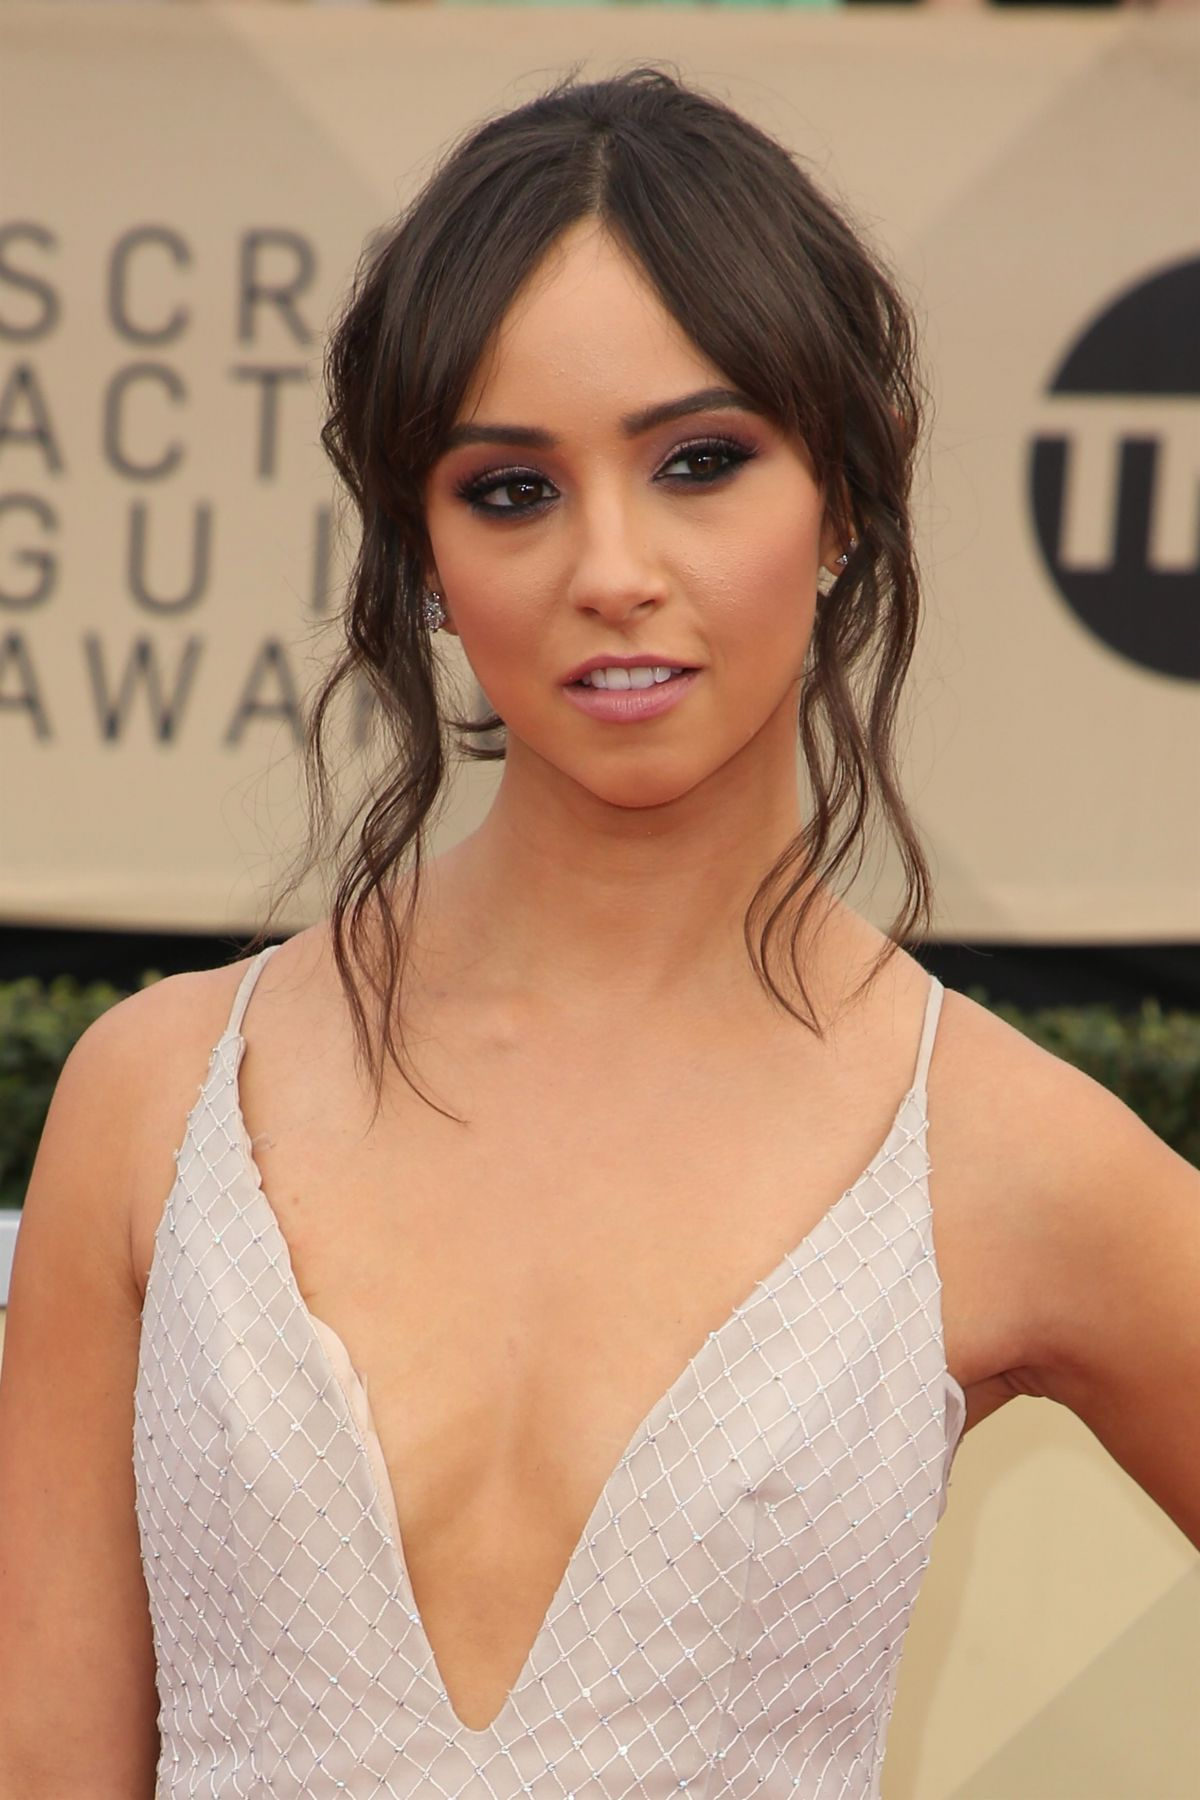 Celebrites Britt Baron nude photos 2019